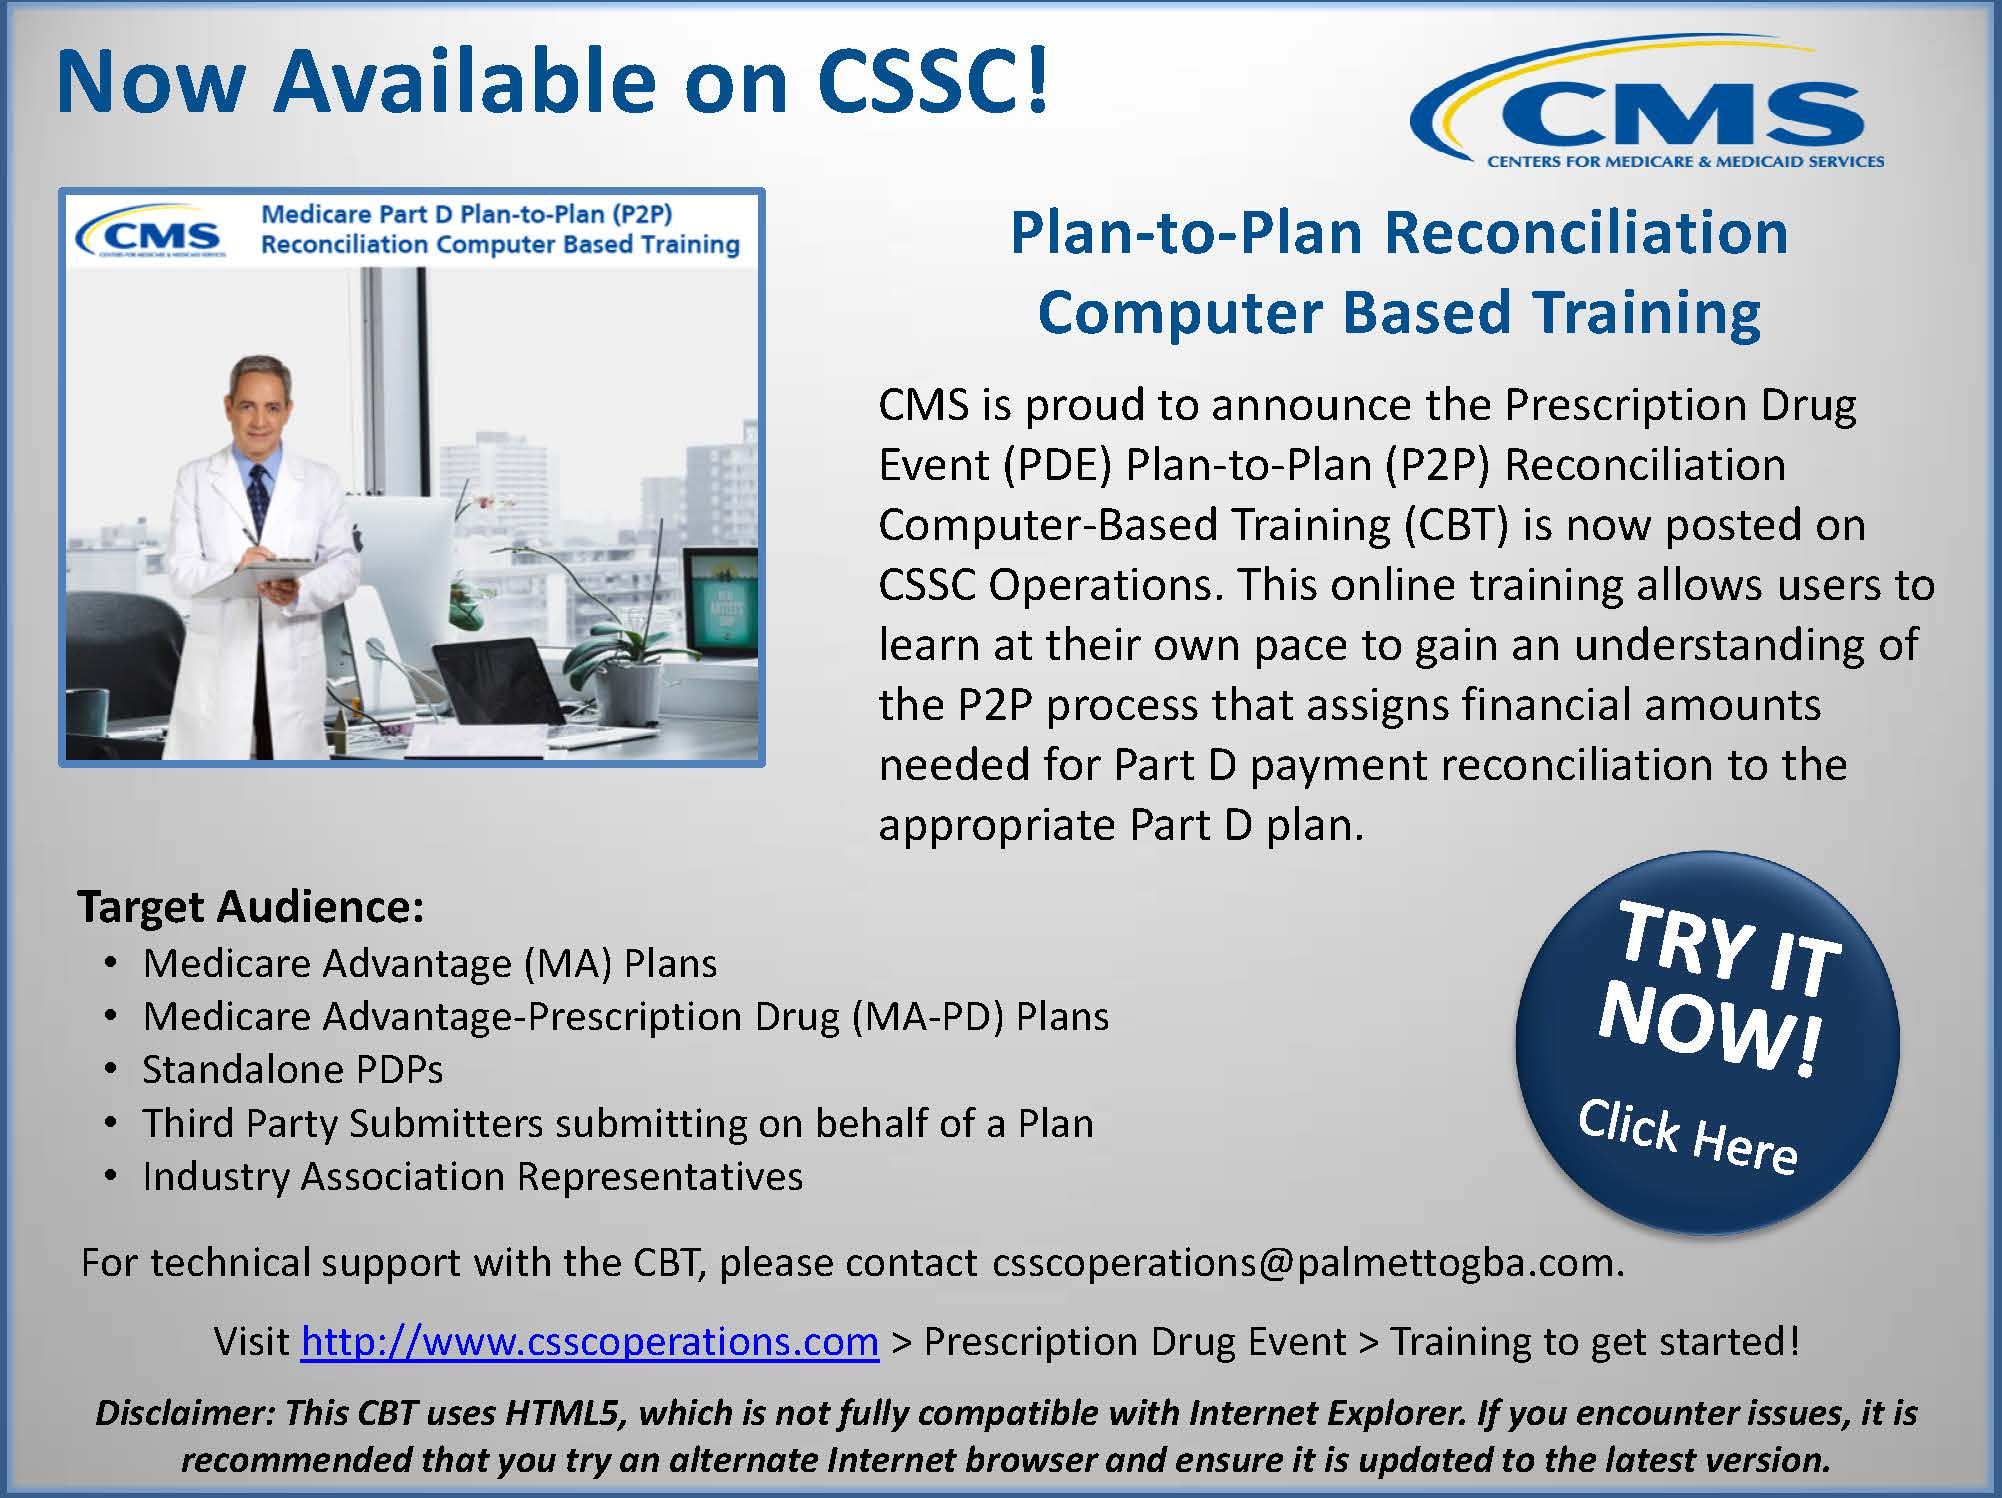 The PDE CBT at http://www.csscoperations.com under Prescription Drug Event Training covers Plan-to-Plan Reconciliation. Tech support to csscoperations@palmettogba.com.